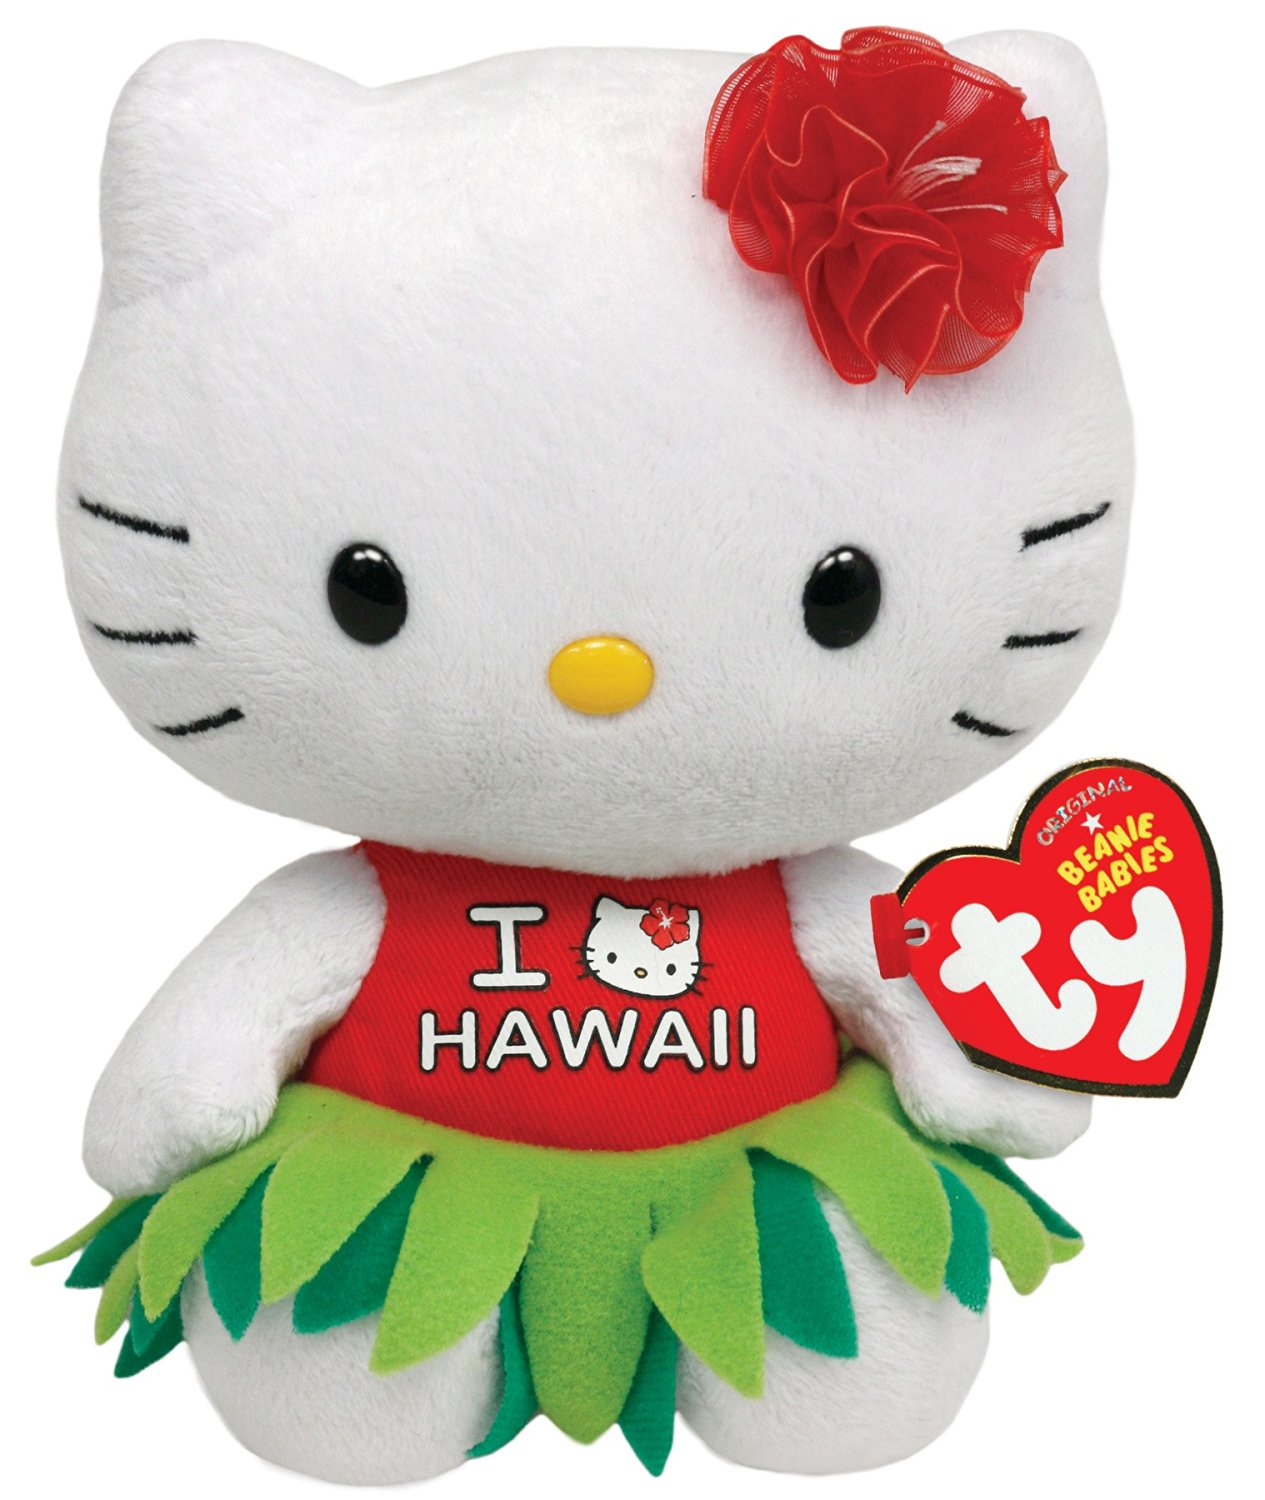 02fb1d79d57 Get Quotations · Ty Beanie Babies Hello Kitty Plush